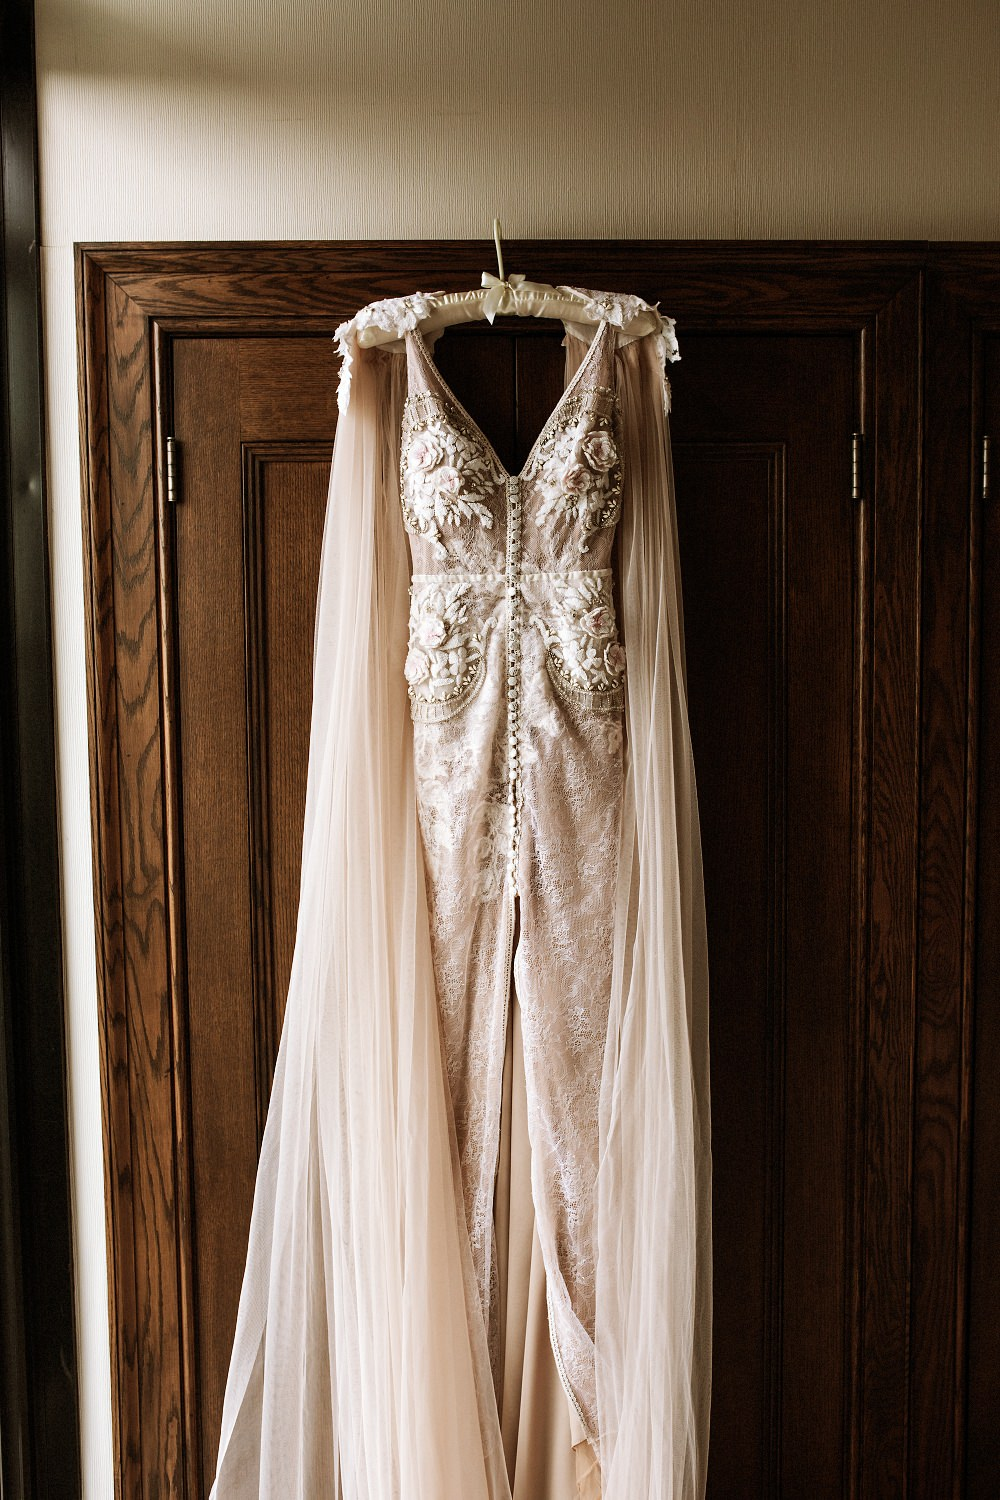 Ludlow Hotel Wedding - A flowing wedding dress hangs from close door by the window